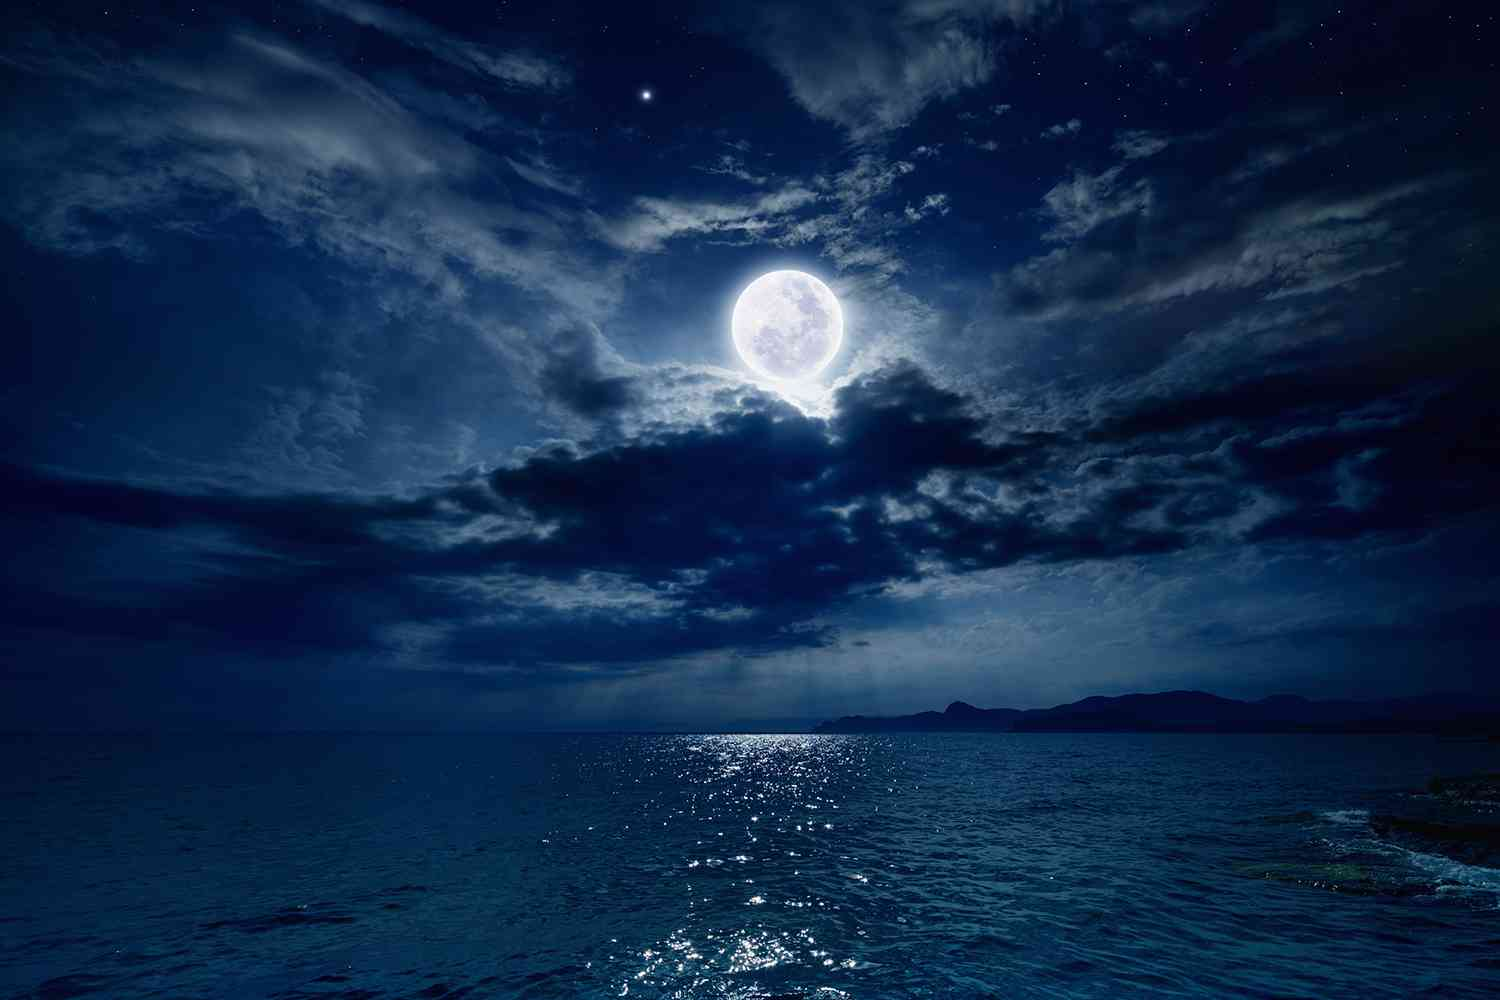 full moon over the sea at night